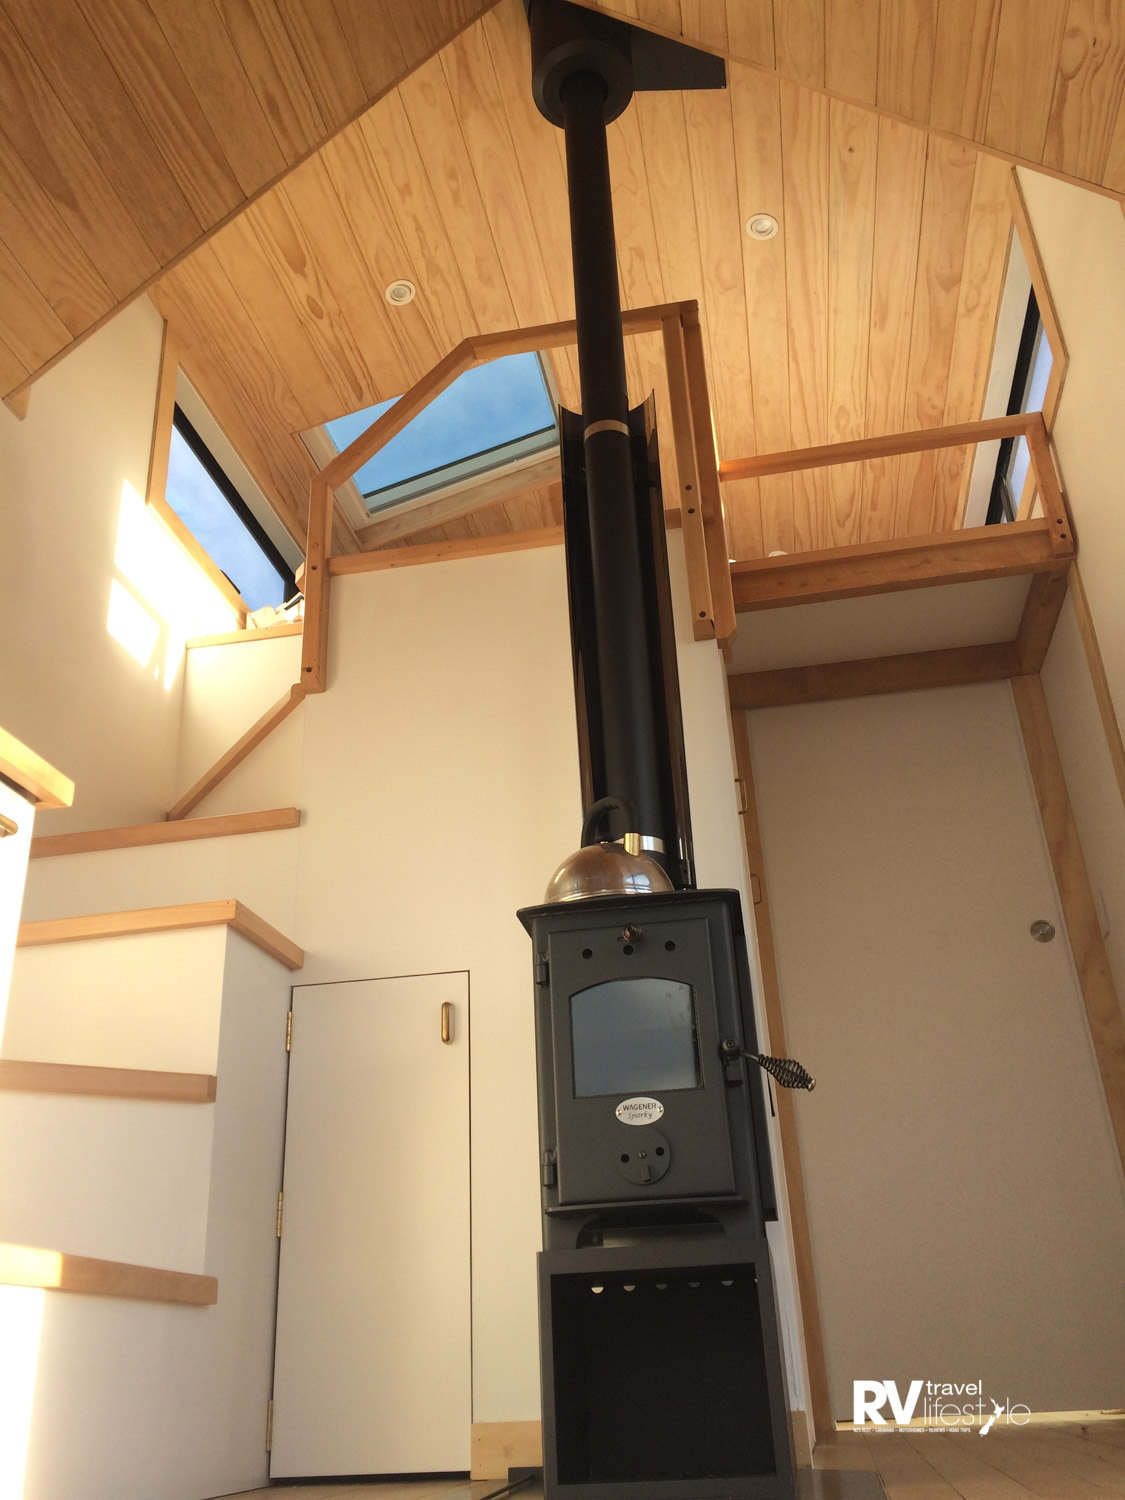 The Wagener Sparky is the perfect-sized fire for a tiny home. The photo (taken by Esther McDonald) shows one in the Briar Hales tiny home.